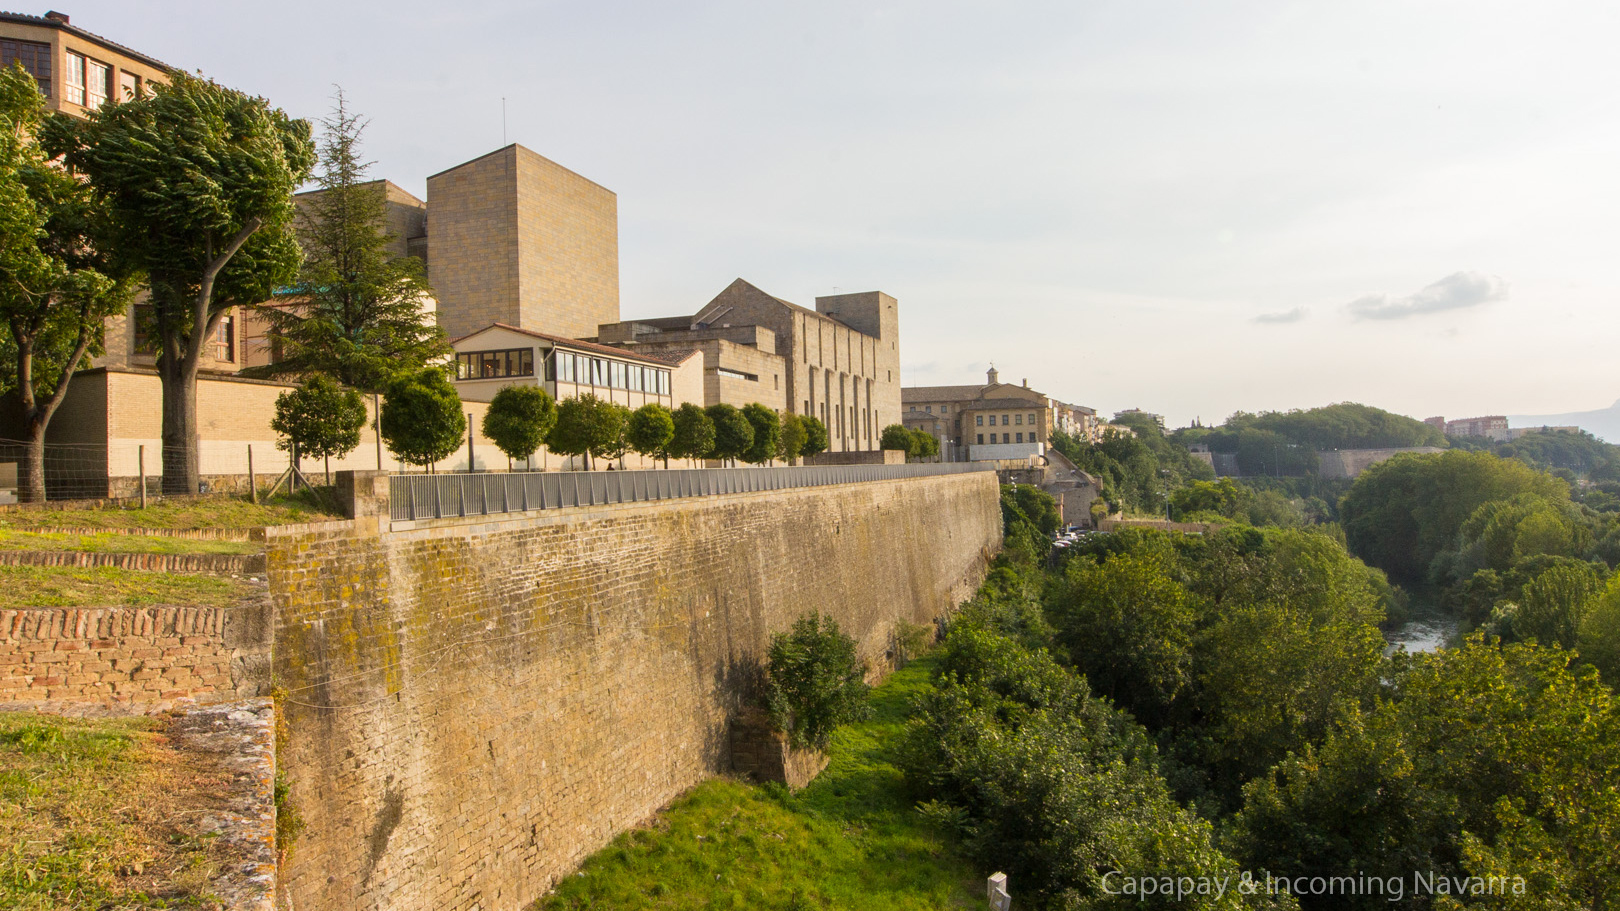 City Walls of Pamplona